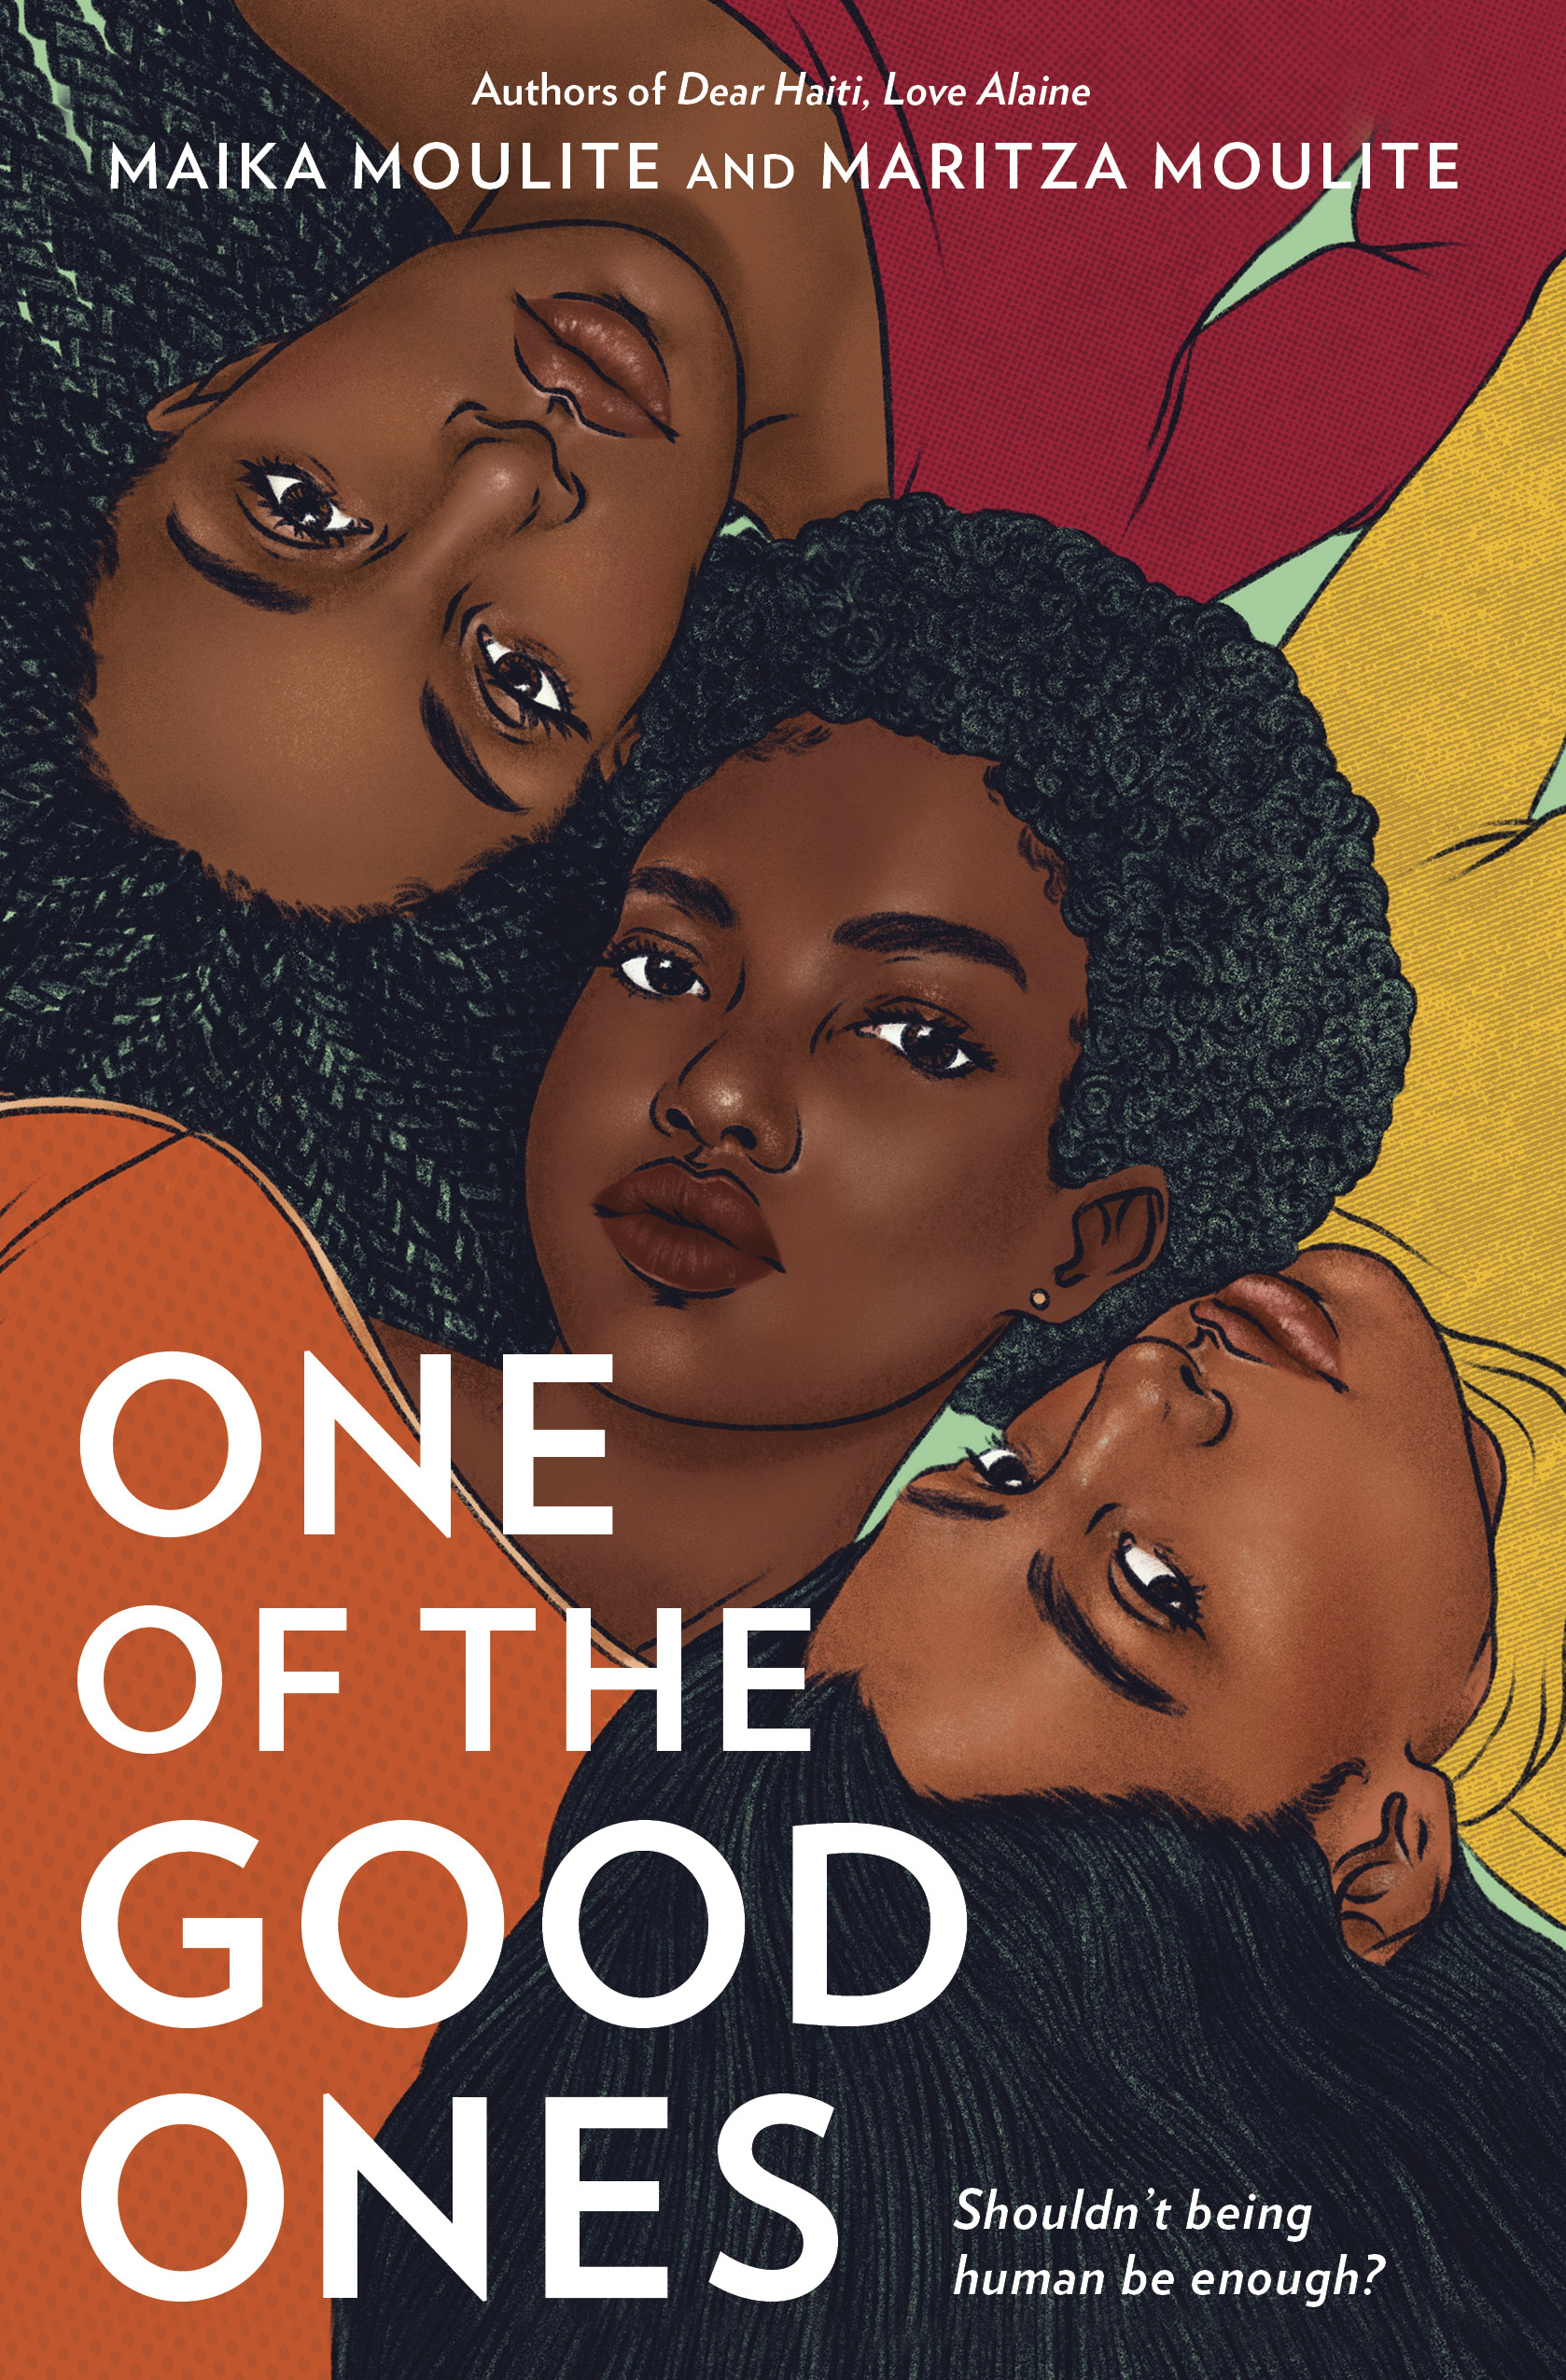 A Journey for Racial Justice in <i>One of the Good Ones</i>